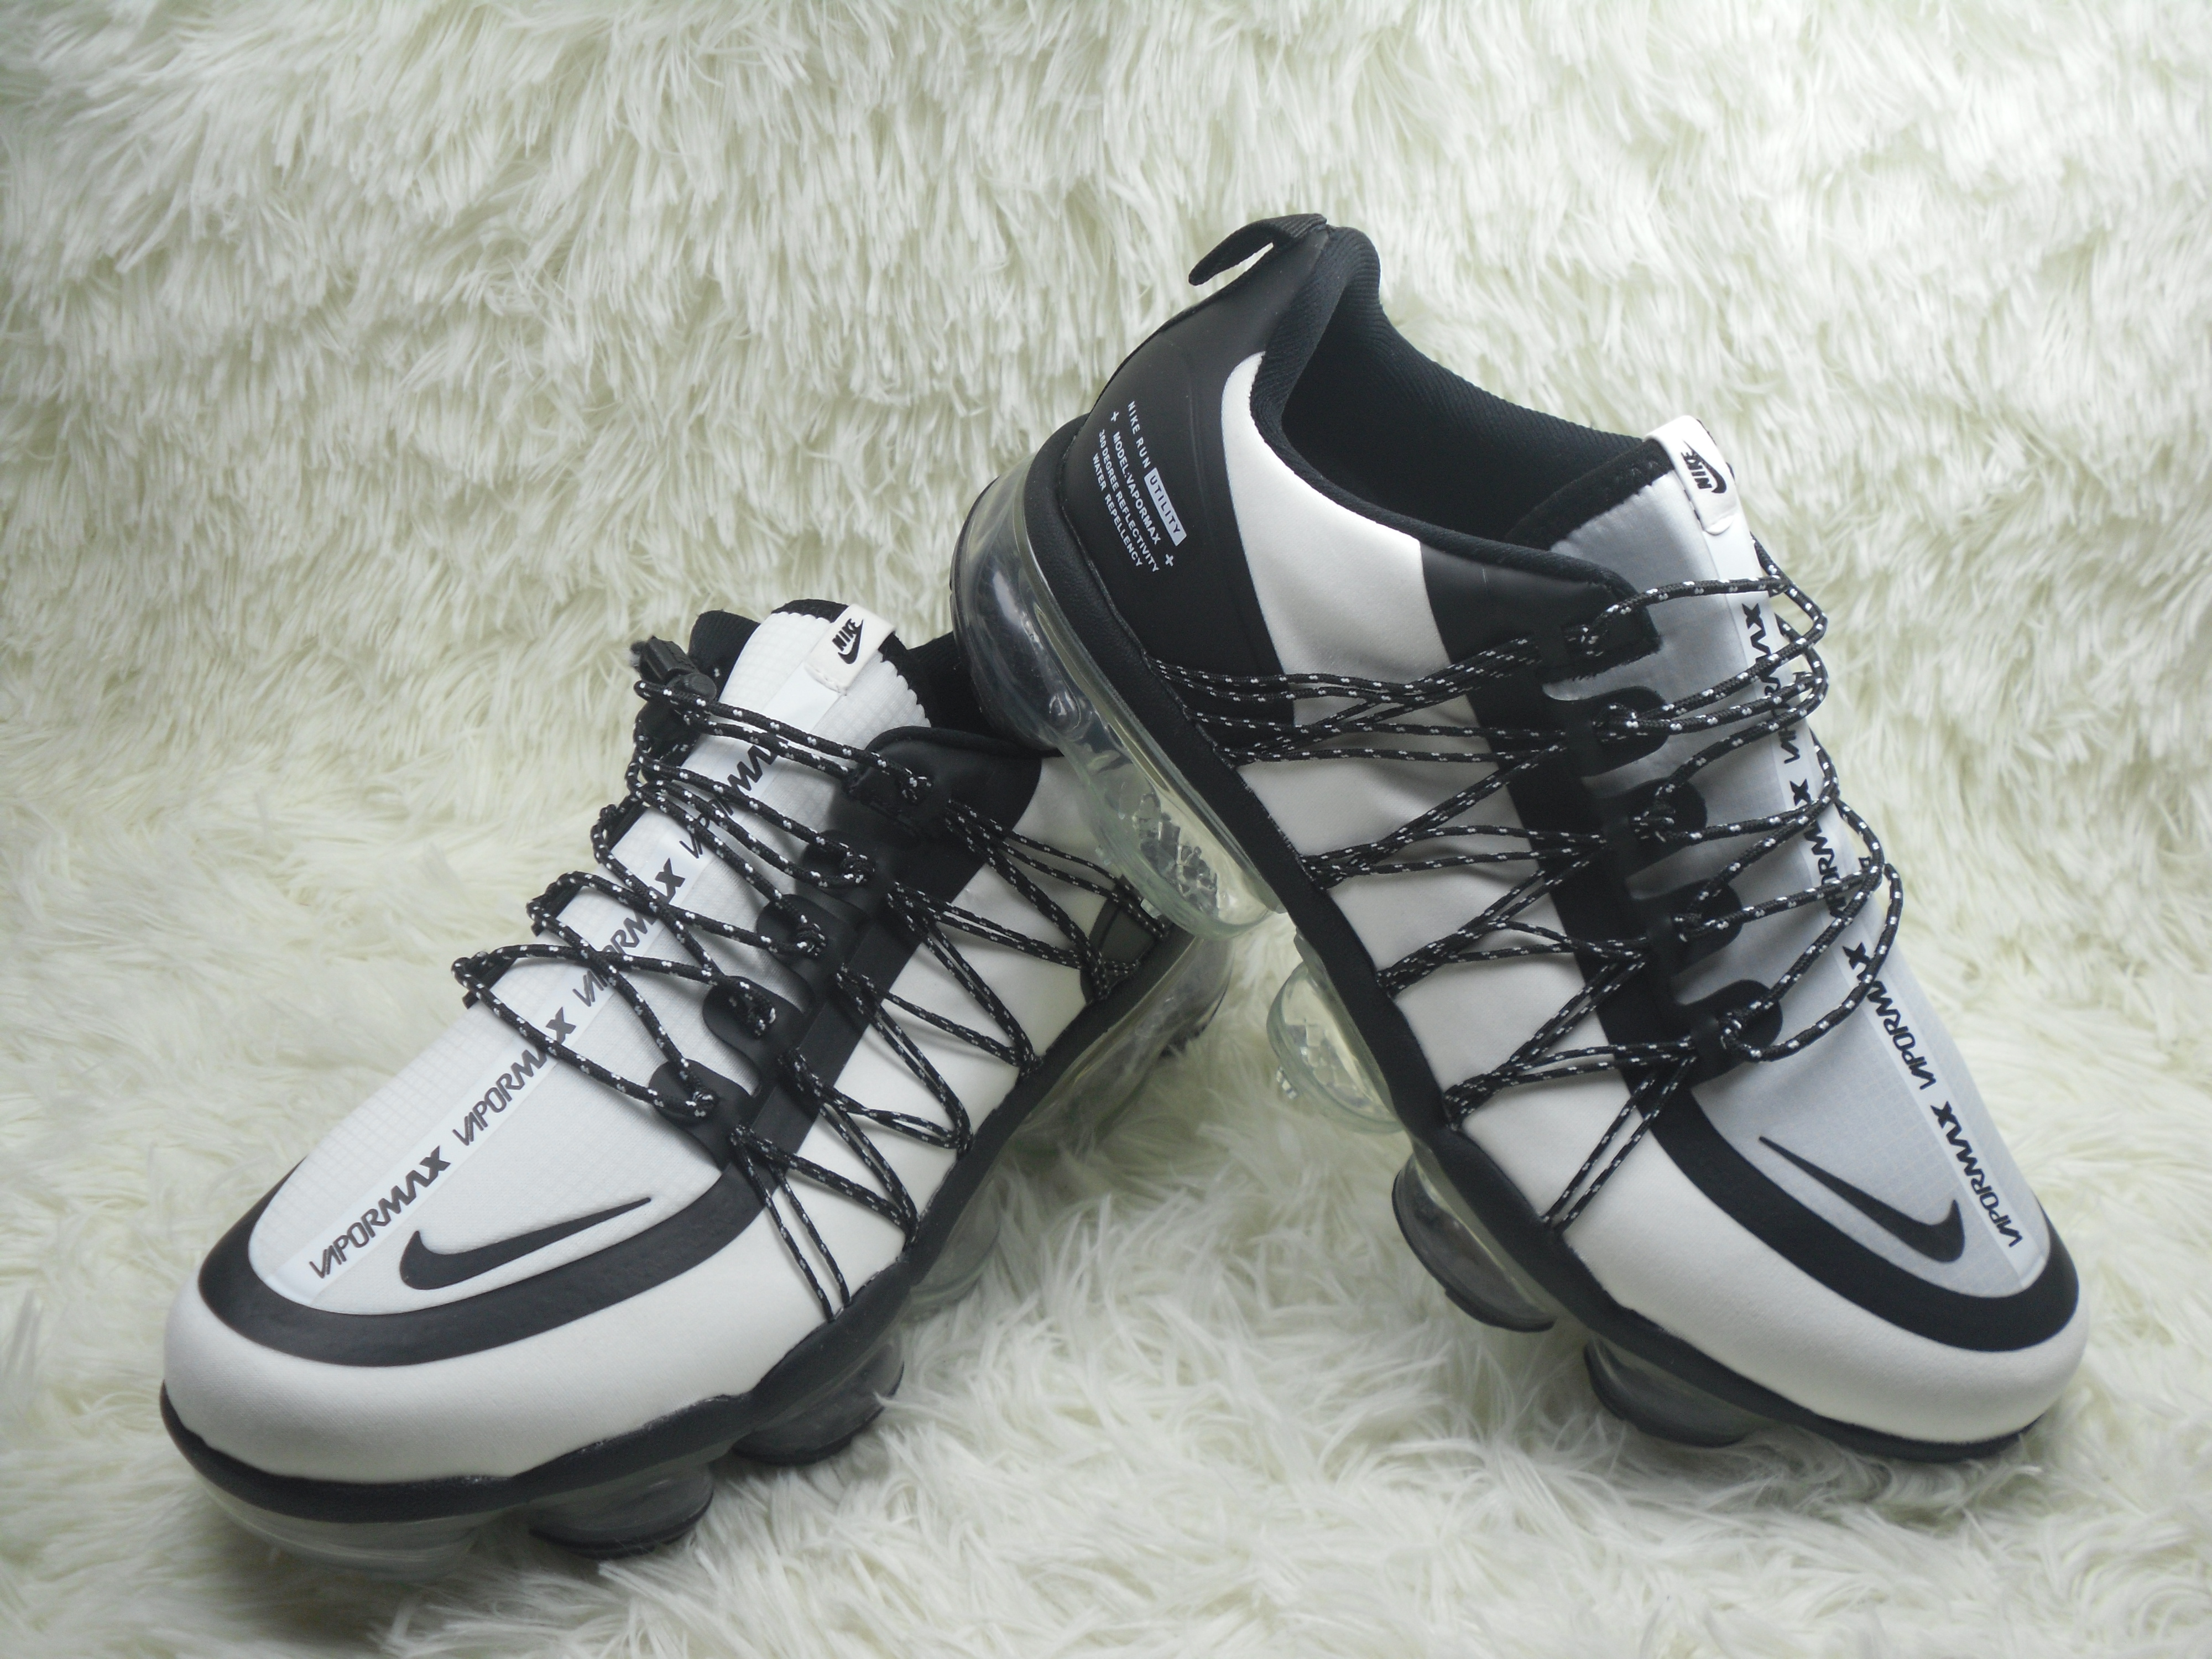 Men NIKE SP W NIKE AIR VAPORMAX RUN UTLTY White Black Shoes